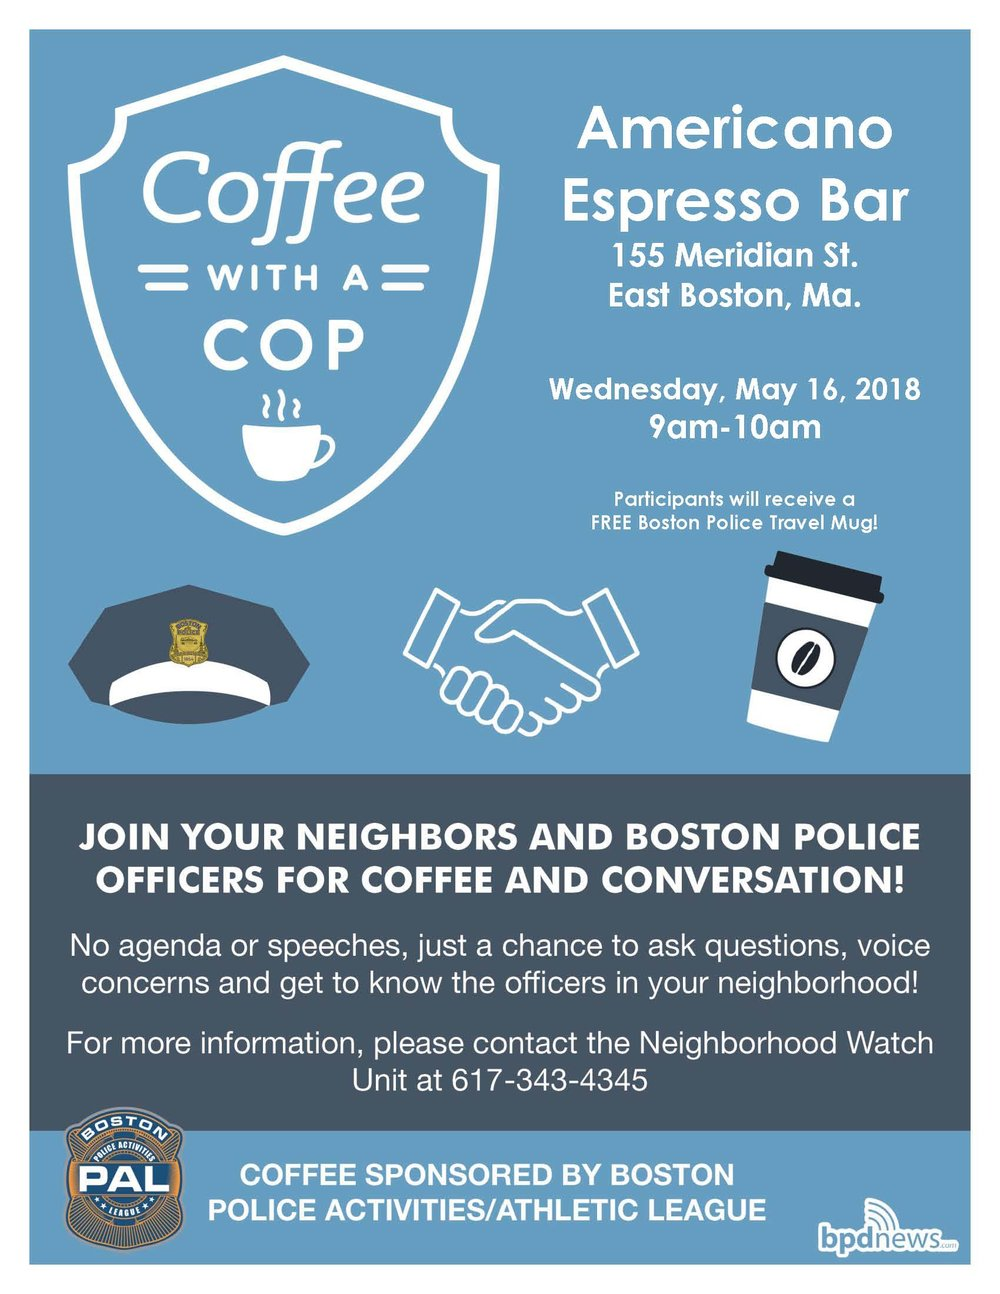 East Boston Coffee with a Cop 2018.jpg